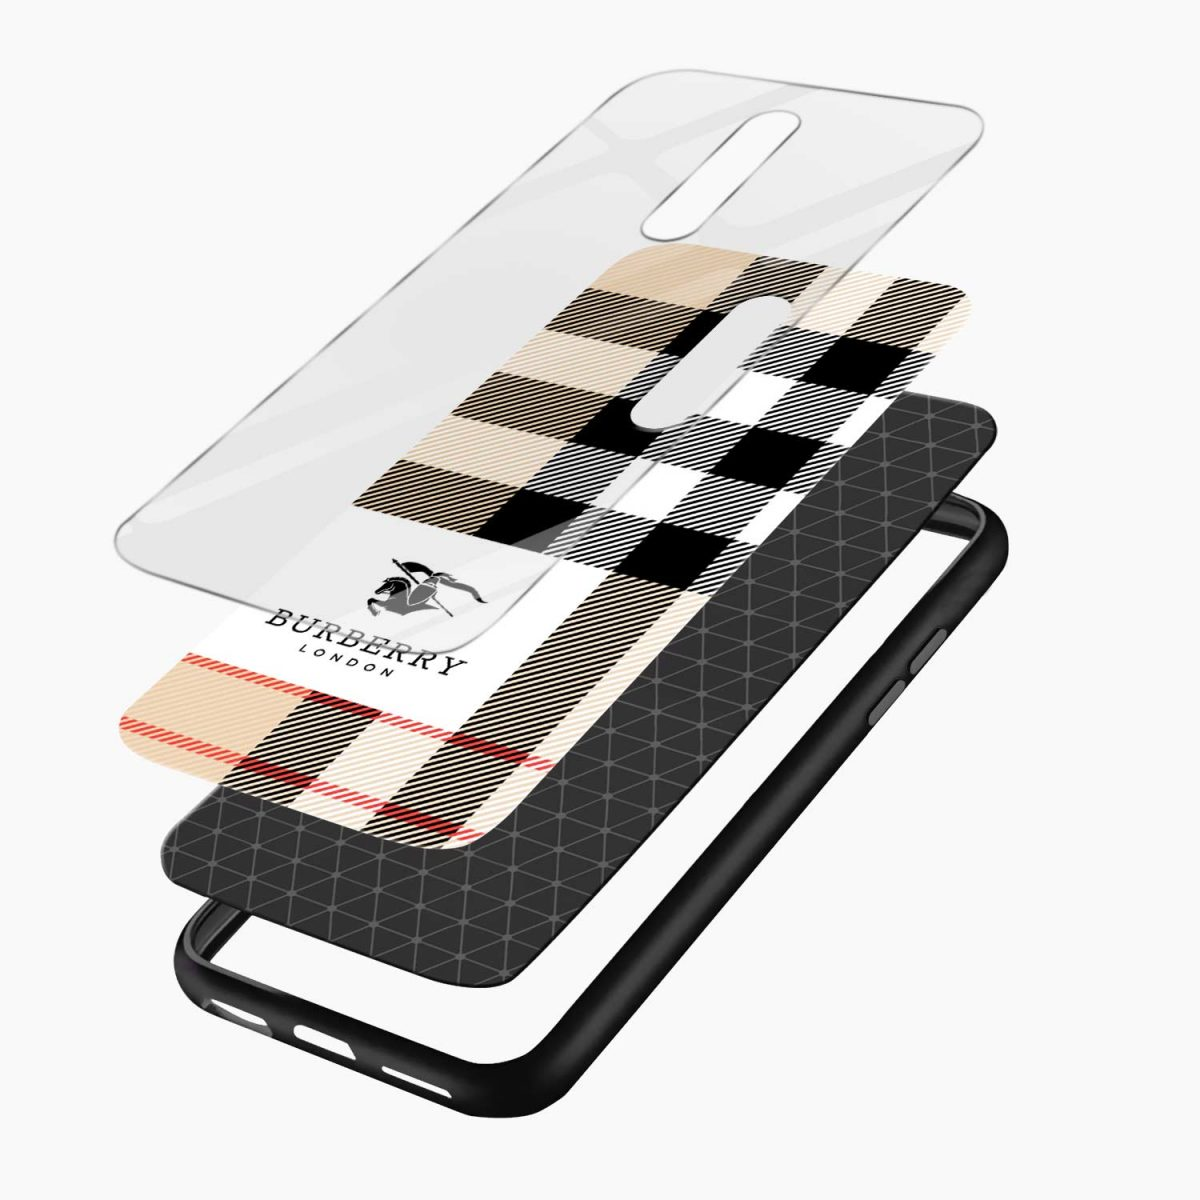 burberry cross lines pattern layers view oneplus 7 pro back cover